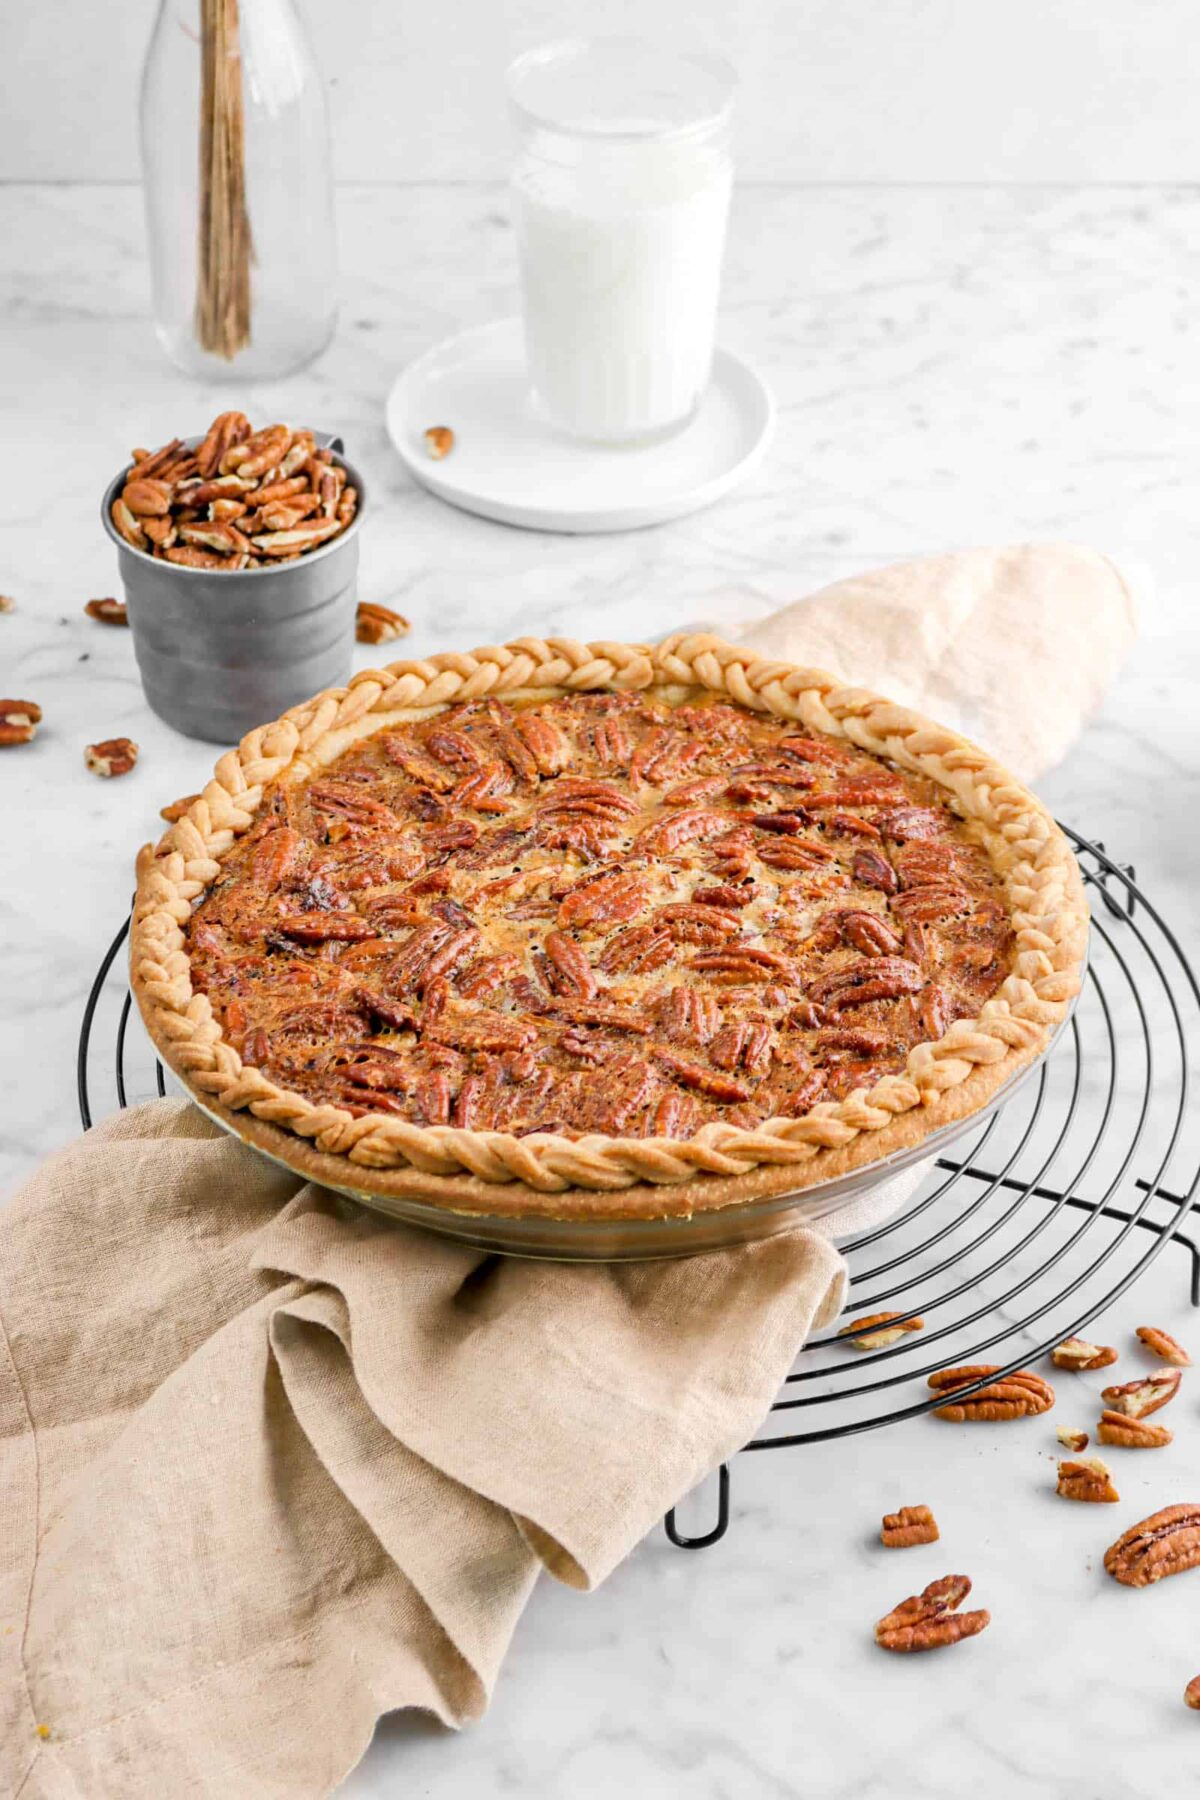 pecan pie on napkin with cup of whole pecans and glass of milk